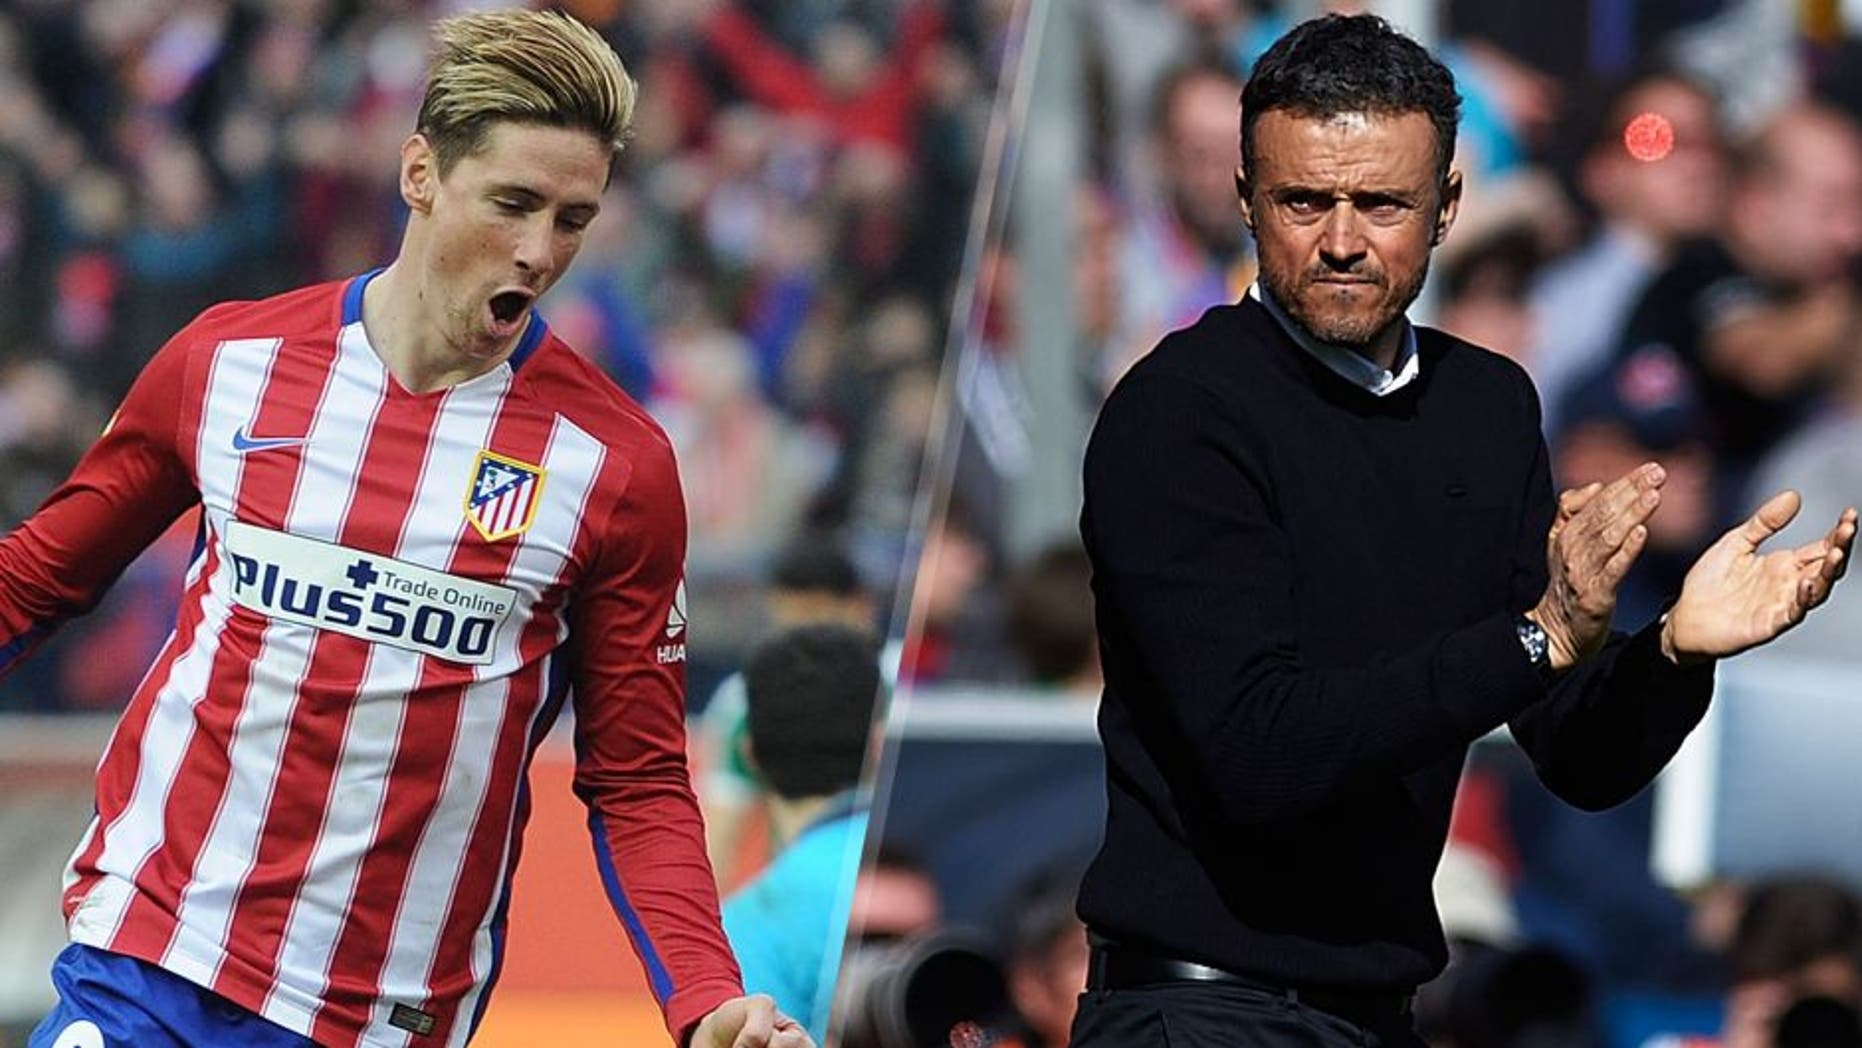 MADRID, SPAIN - FEBRUARY 06: Fernando Torres of Club Atletico de Madrid celebrates after scoring his team's 3rd goal against Asier Riesgo of SD Eibar during the La Liga match between Club Atletico de Madrid and SD Eibar at Vicente Calderon Stadium on February 6, 2016 in Madrid, Spain. (Photo by Denis Doyle/Getty Images) VALENCIA, SPAIN - FEBRUARY 07: FC Barcelona manager Luis Enrique reacts diring the La Liga match between Levante UD and FC Barcelona at Ciutat de Valencia on February 07, 2016 in Valencia, Spain. (Photo by Manuel Queimadelos Alonso/Getty Images)